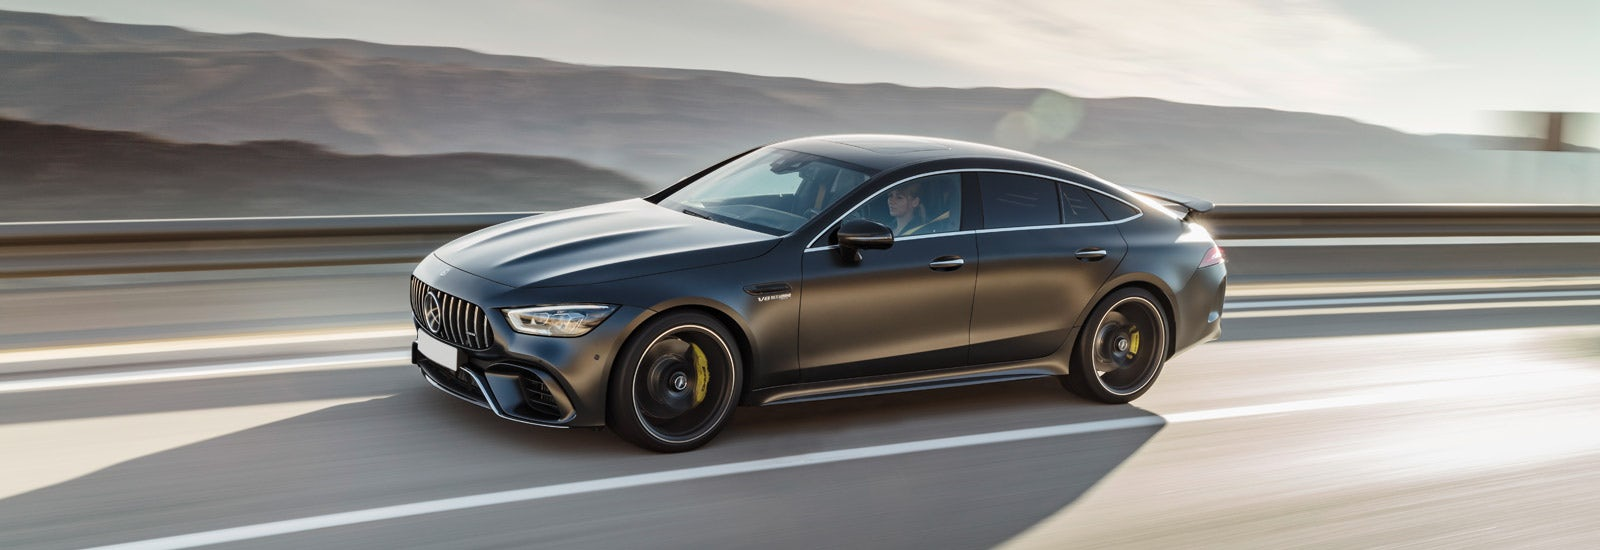 2018 mercedes amg gt4 price specs and release date carwow. Black Bedroom Furniture Sets. Home Design Ideas